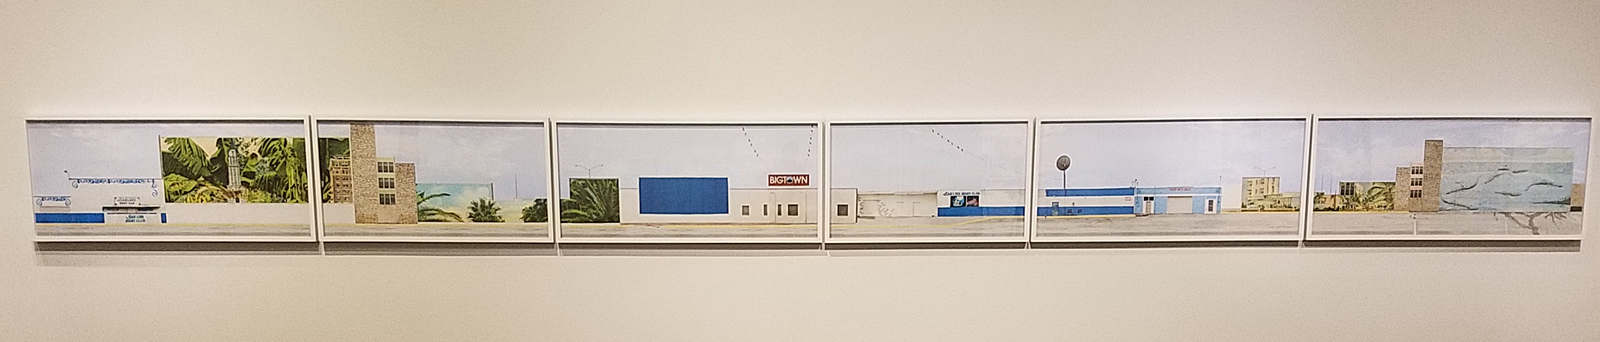 """Leigh Merrill (b. 1978). """"The Strip,"""" 2013. Pigment prinst, 20 x 254 in. Courtesy of the artist."""